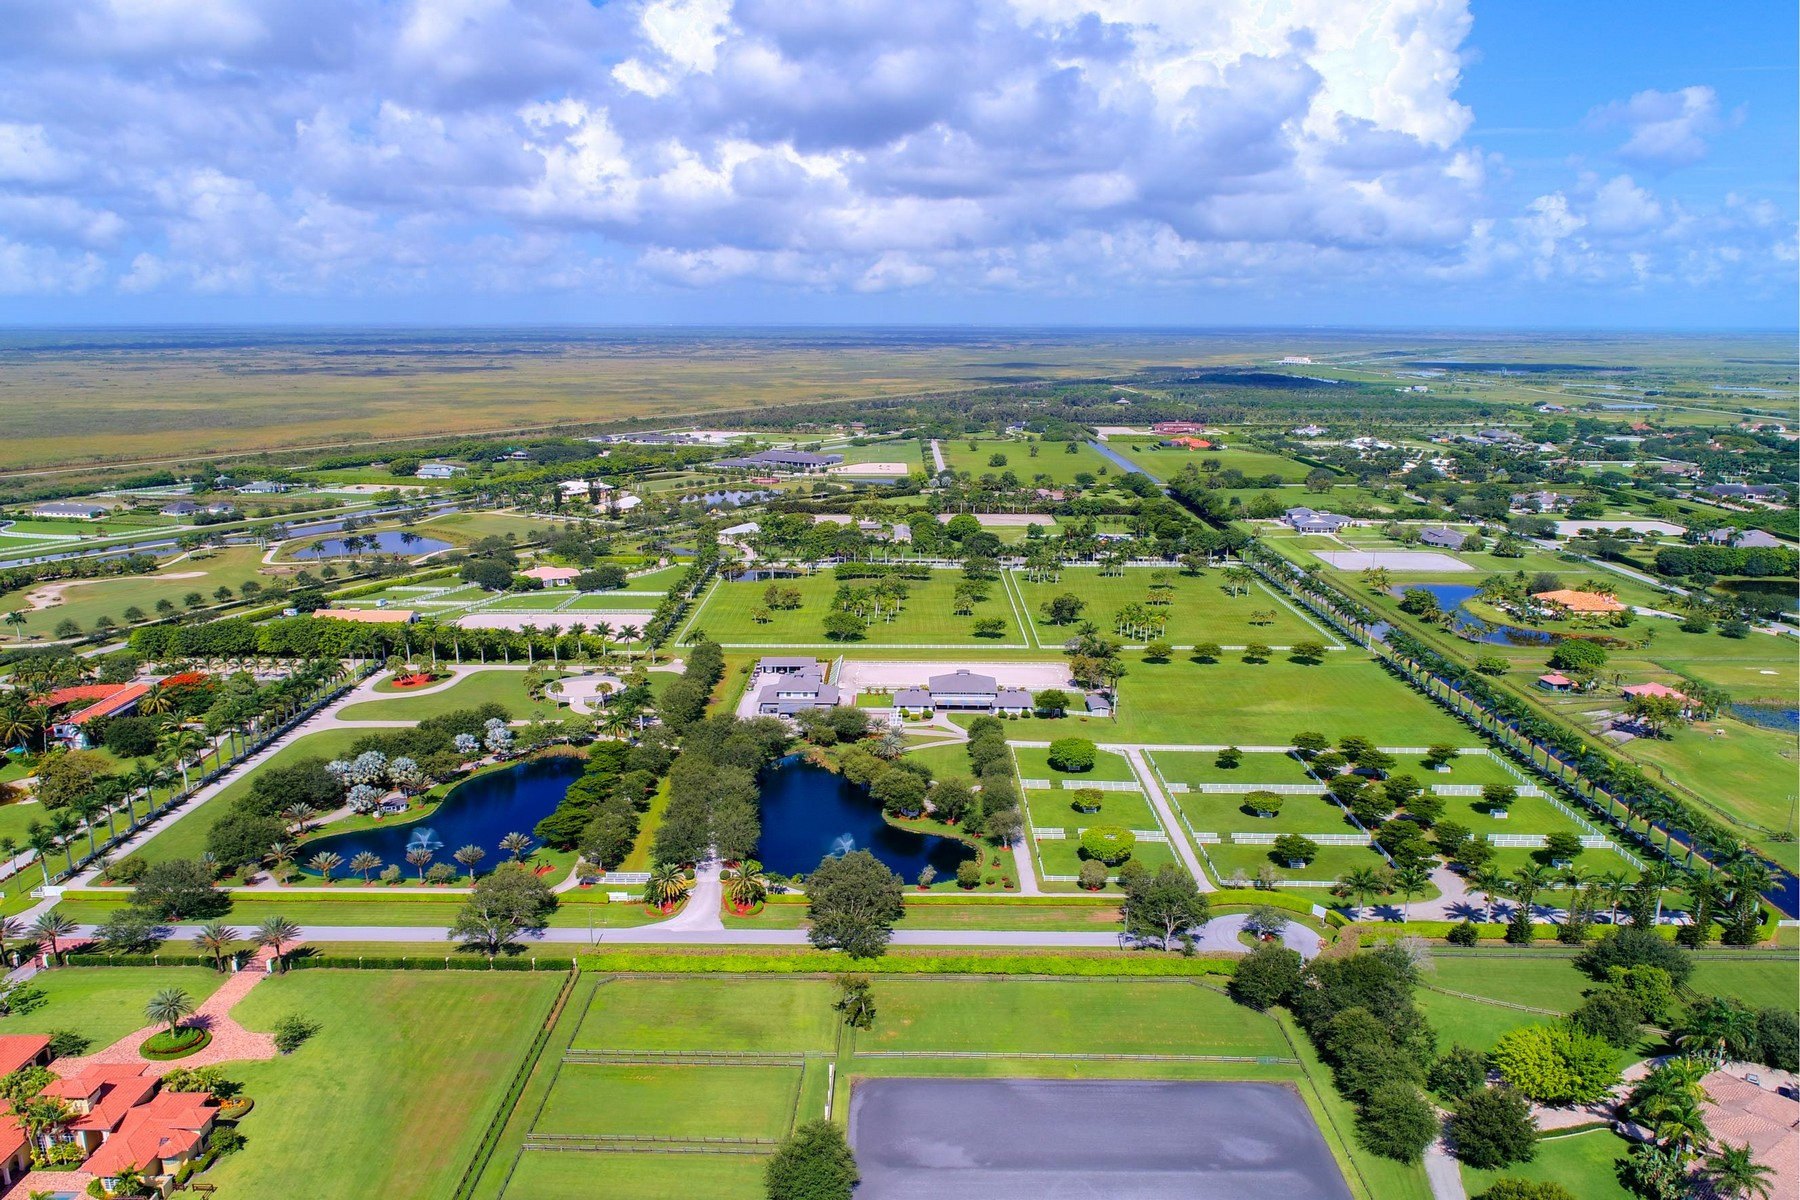 Maison unifamiliale pour l Vente à Owls Roost Farms 4481 Garden Point Trail Wellington, Florida 33414 États-Unis